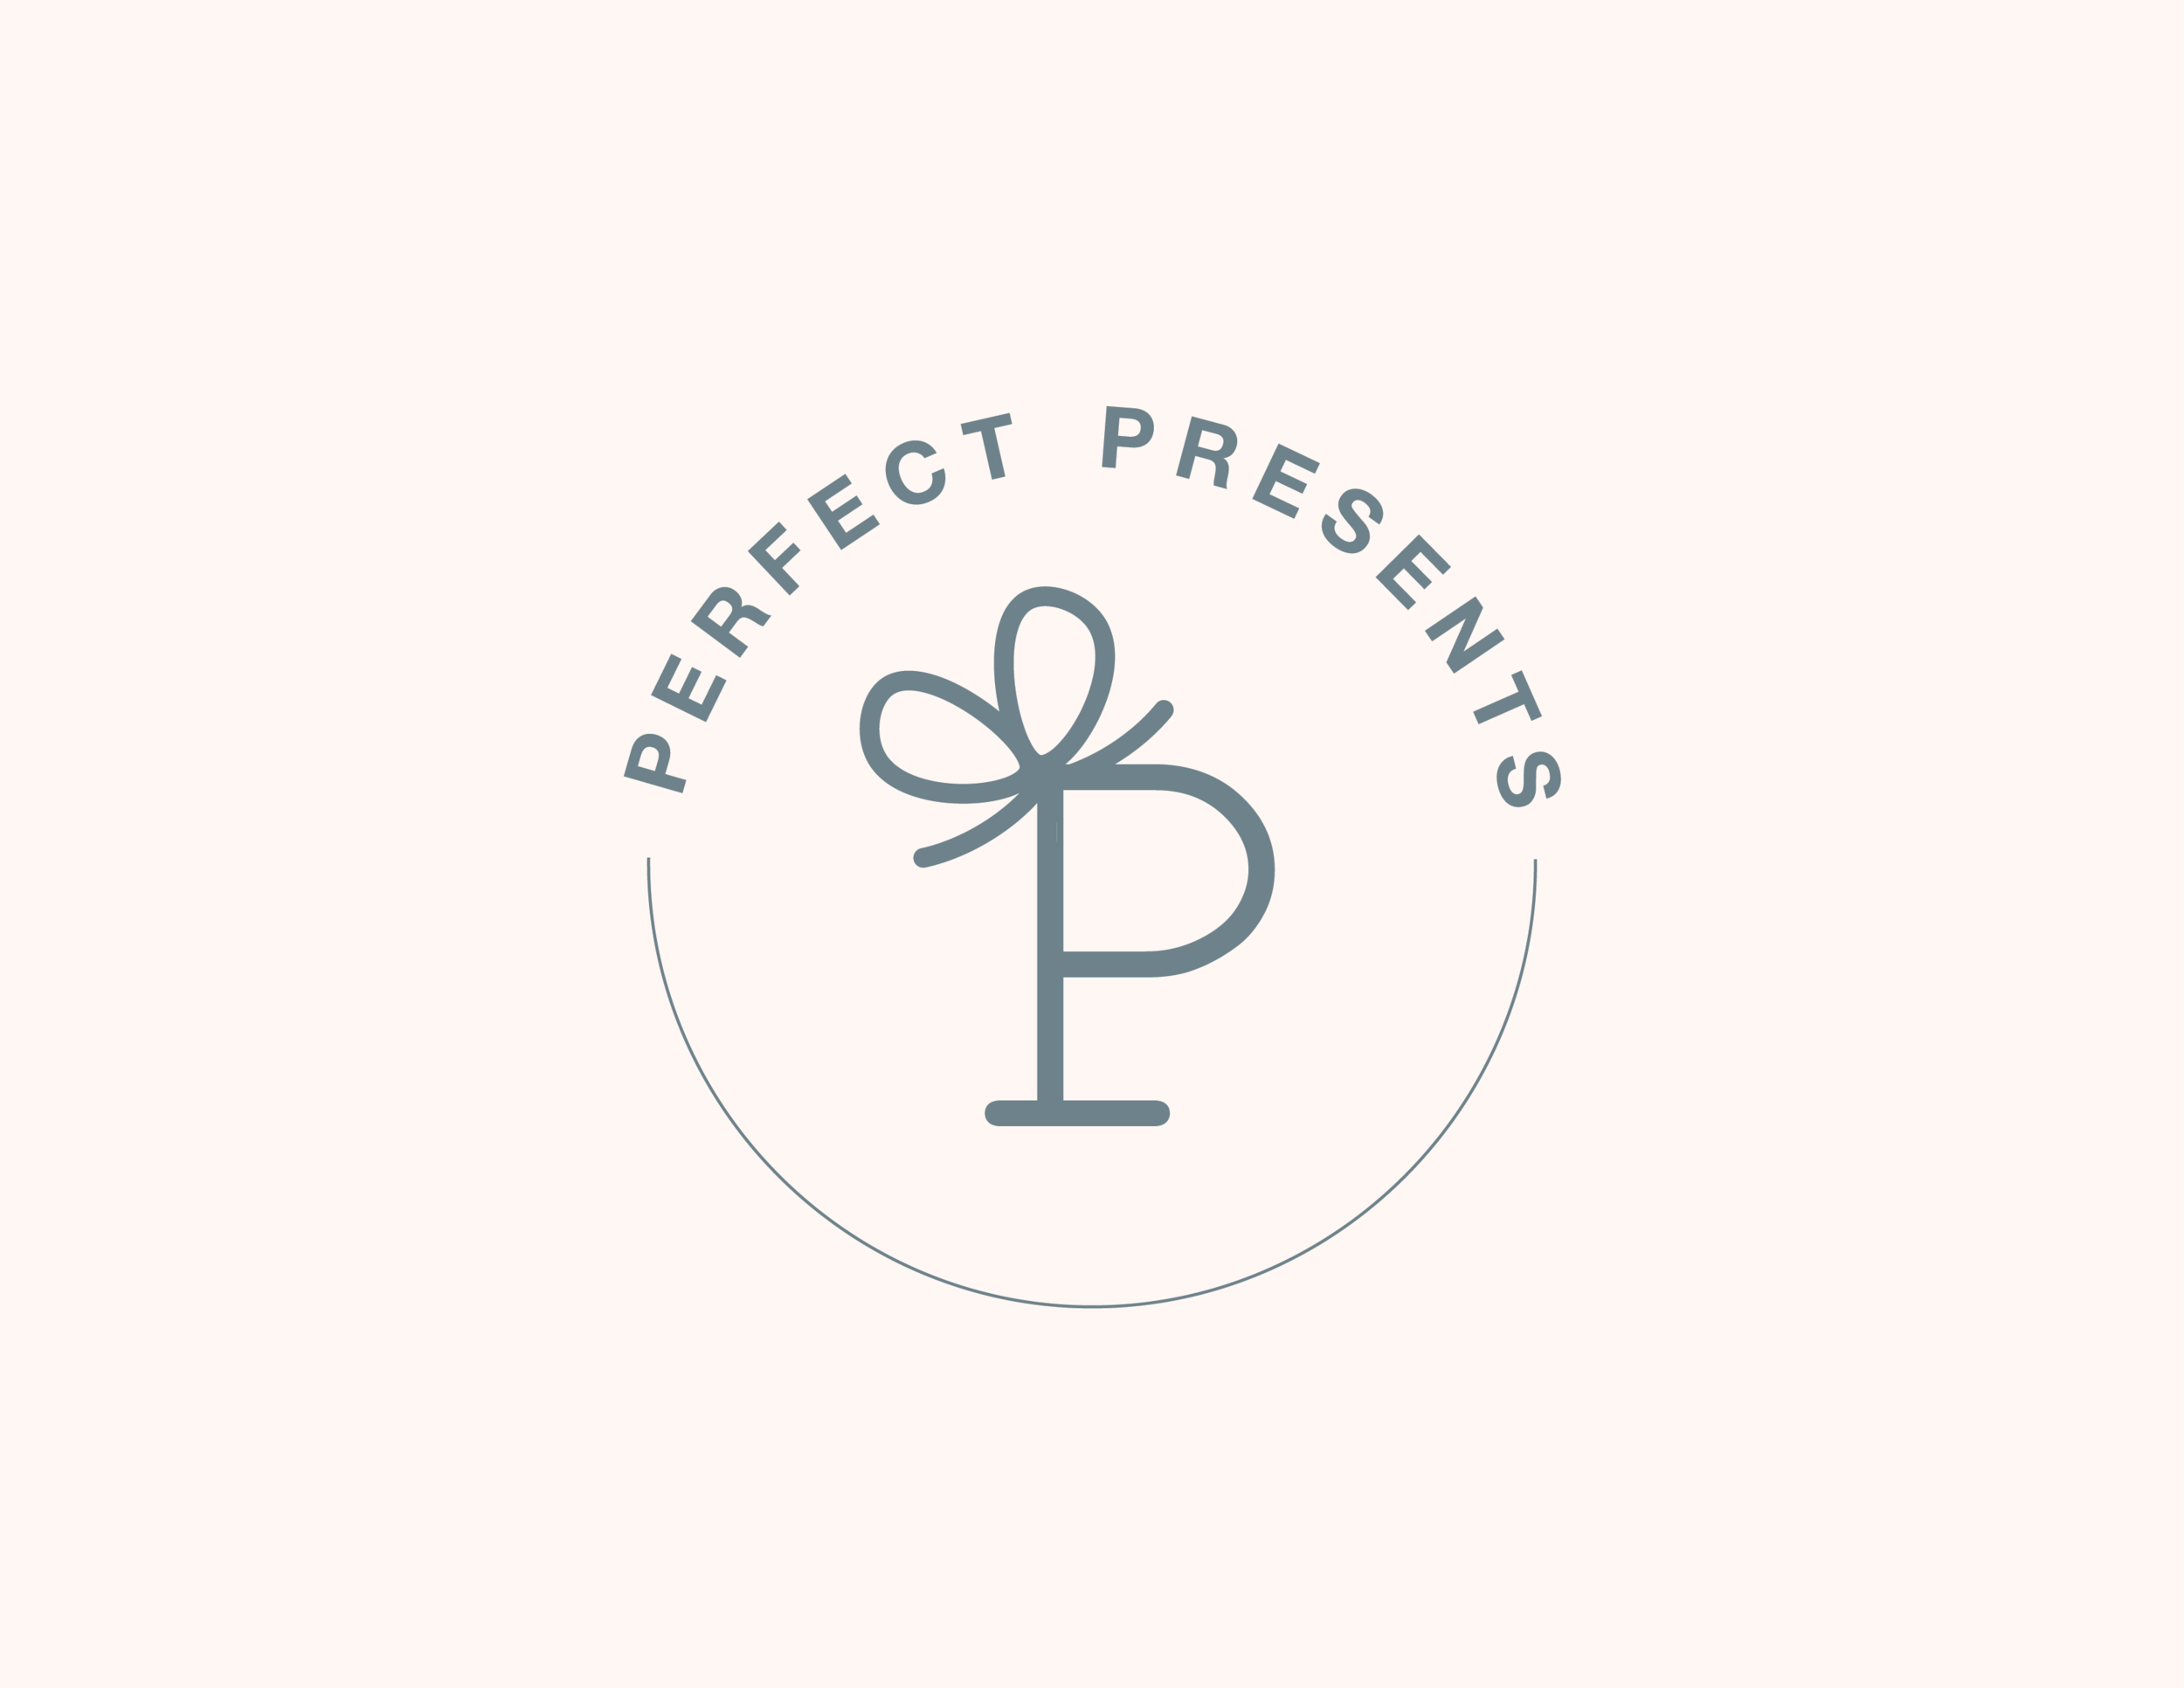 PerfectPresents_Logos2-01.png